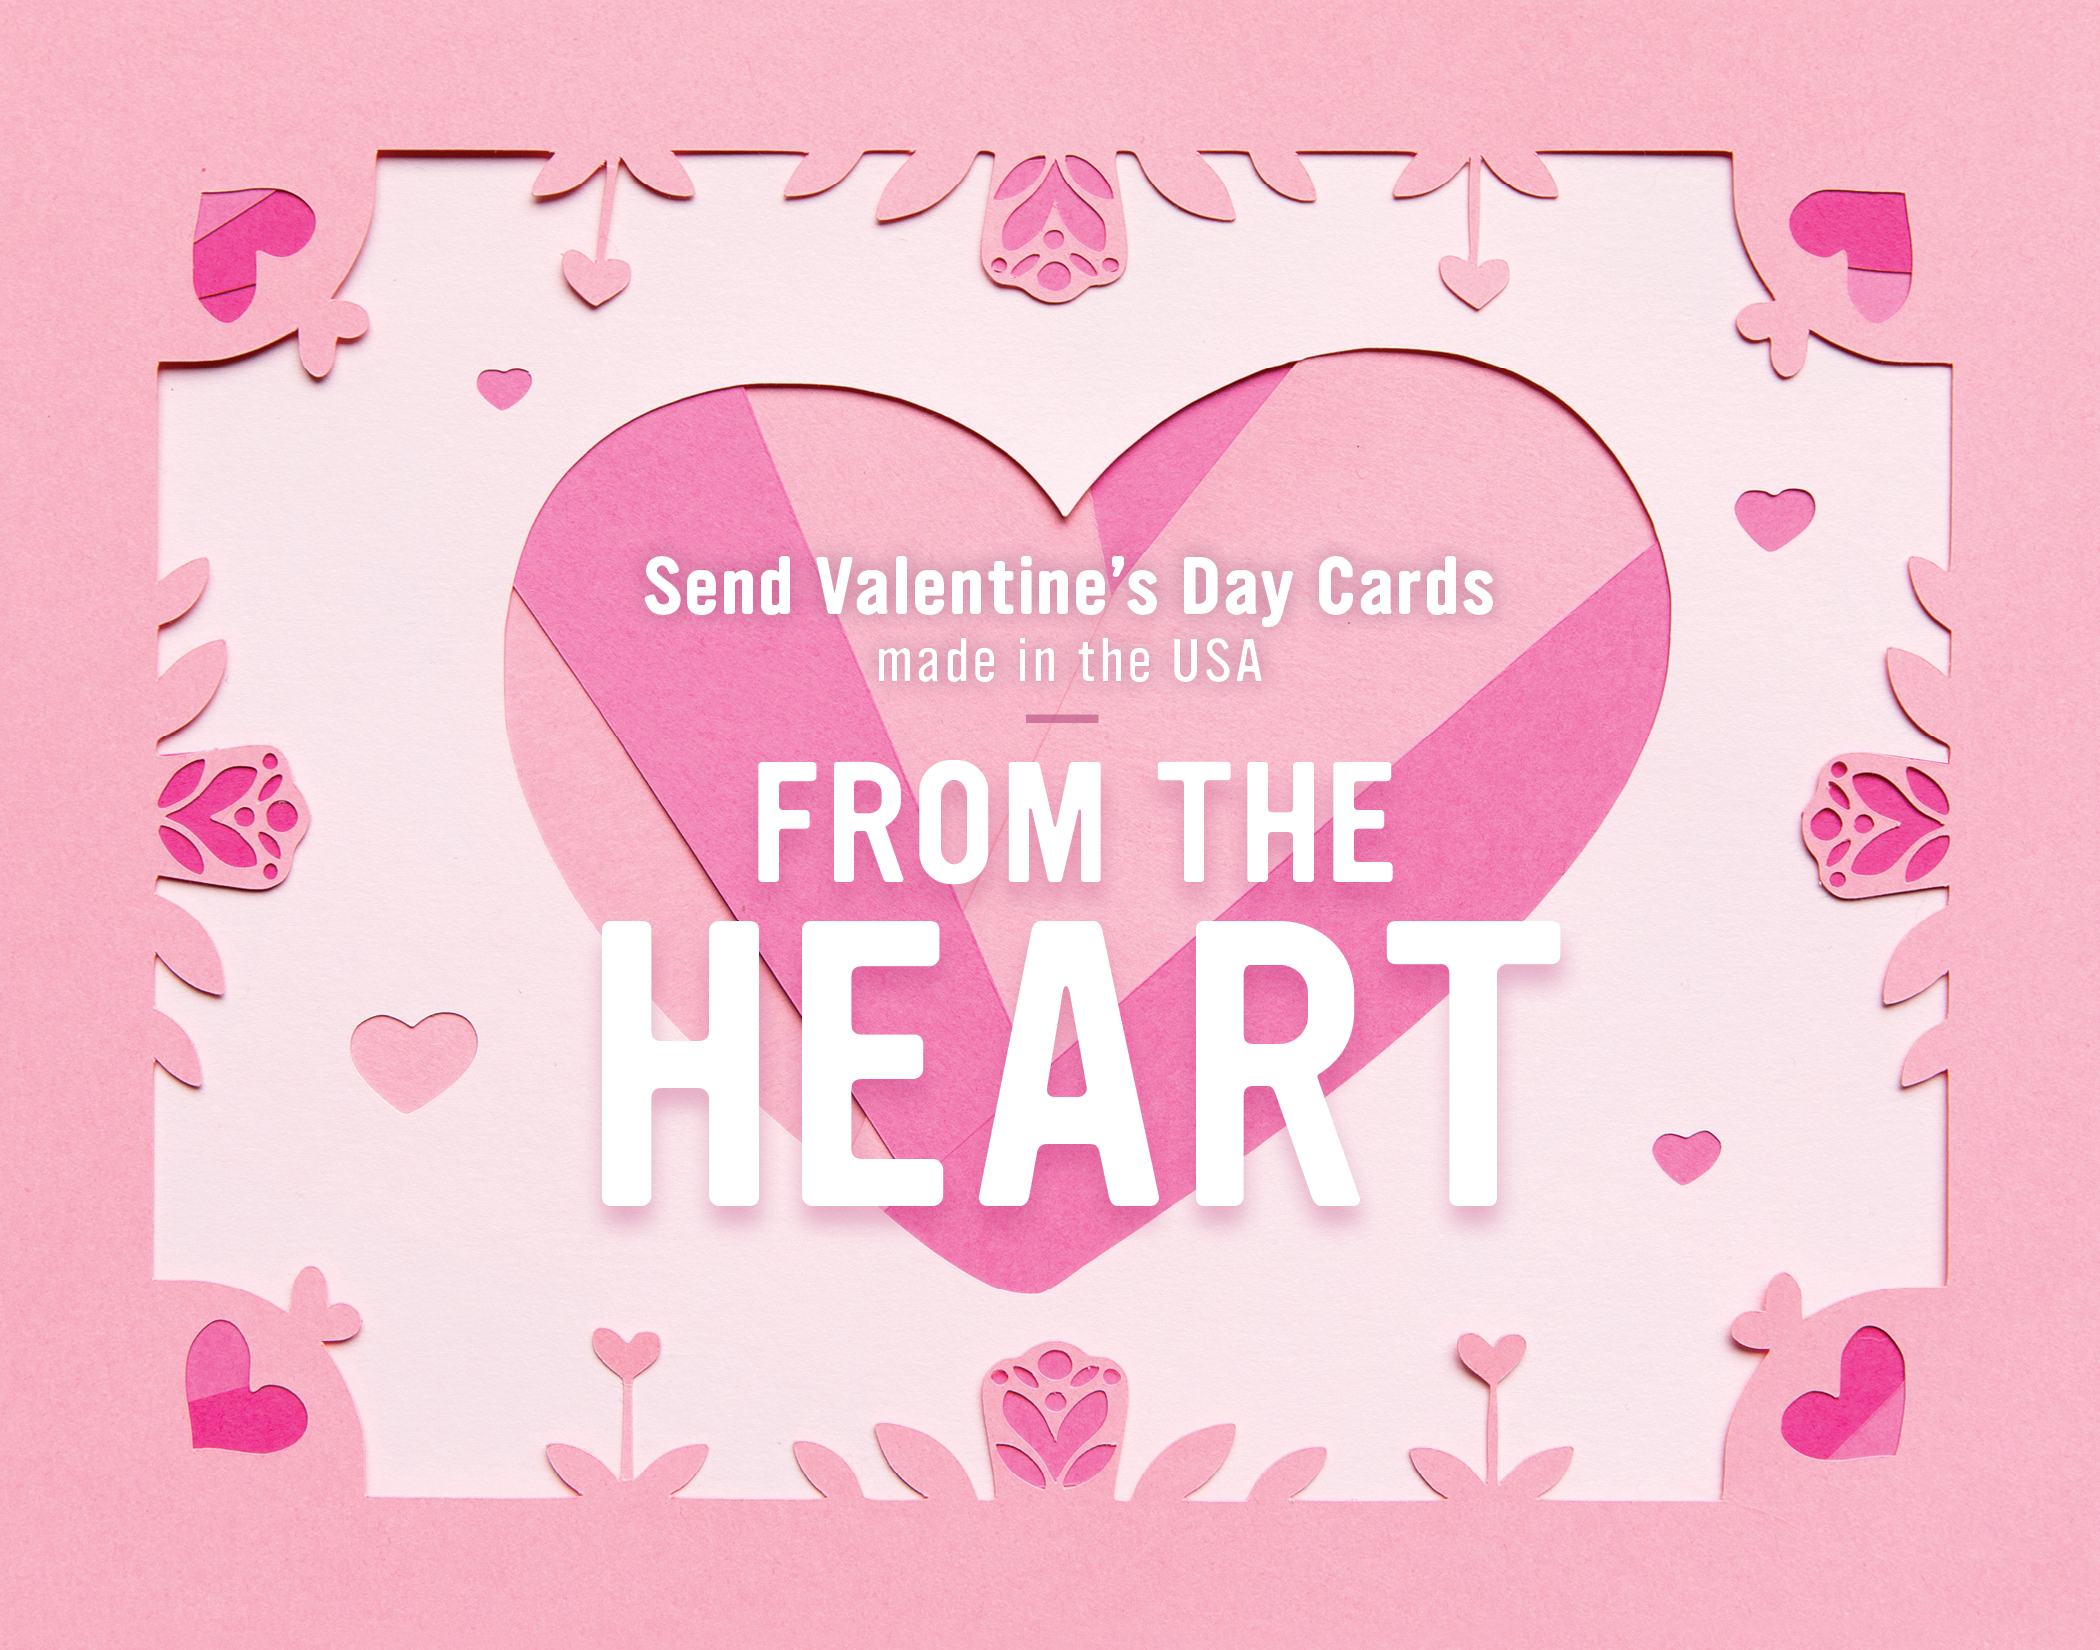 CB_Vday_CardSpinner_2019_OUT